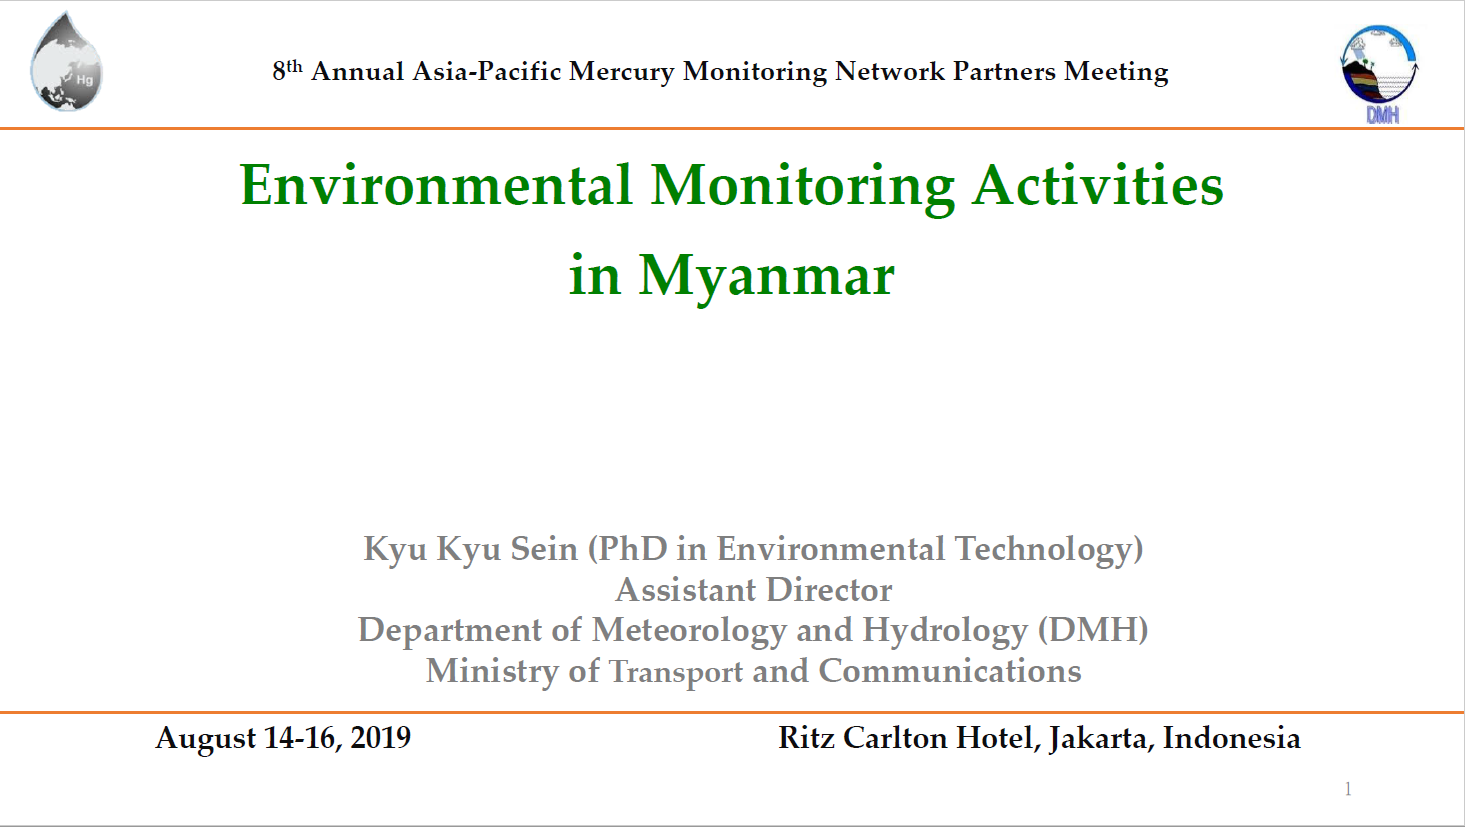 First page of Environmental Monitoring Activities in Myanmar